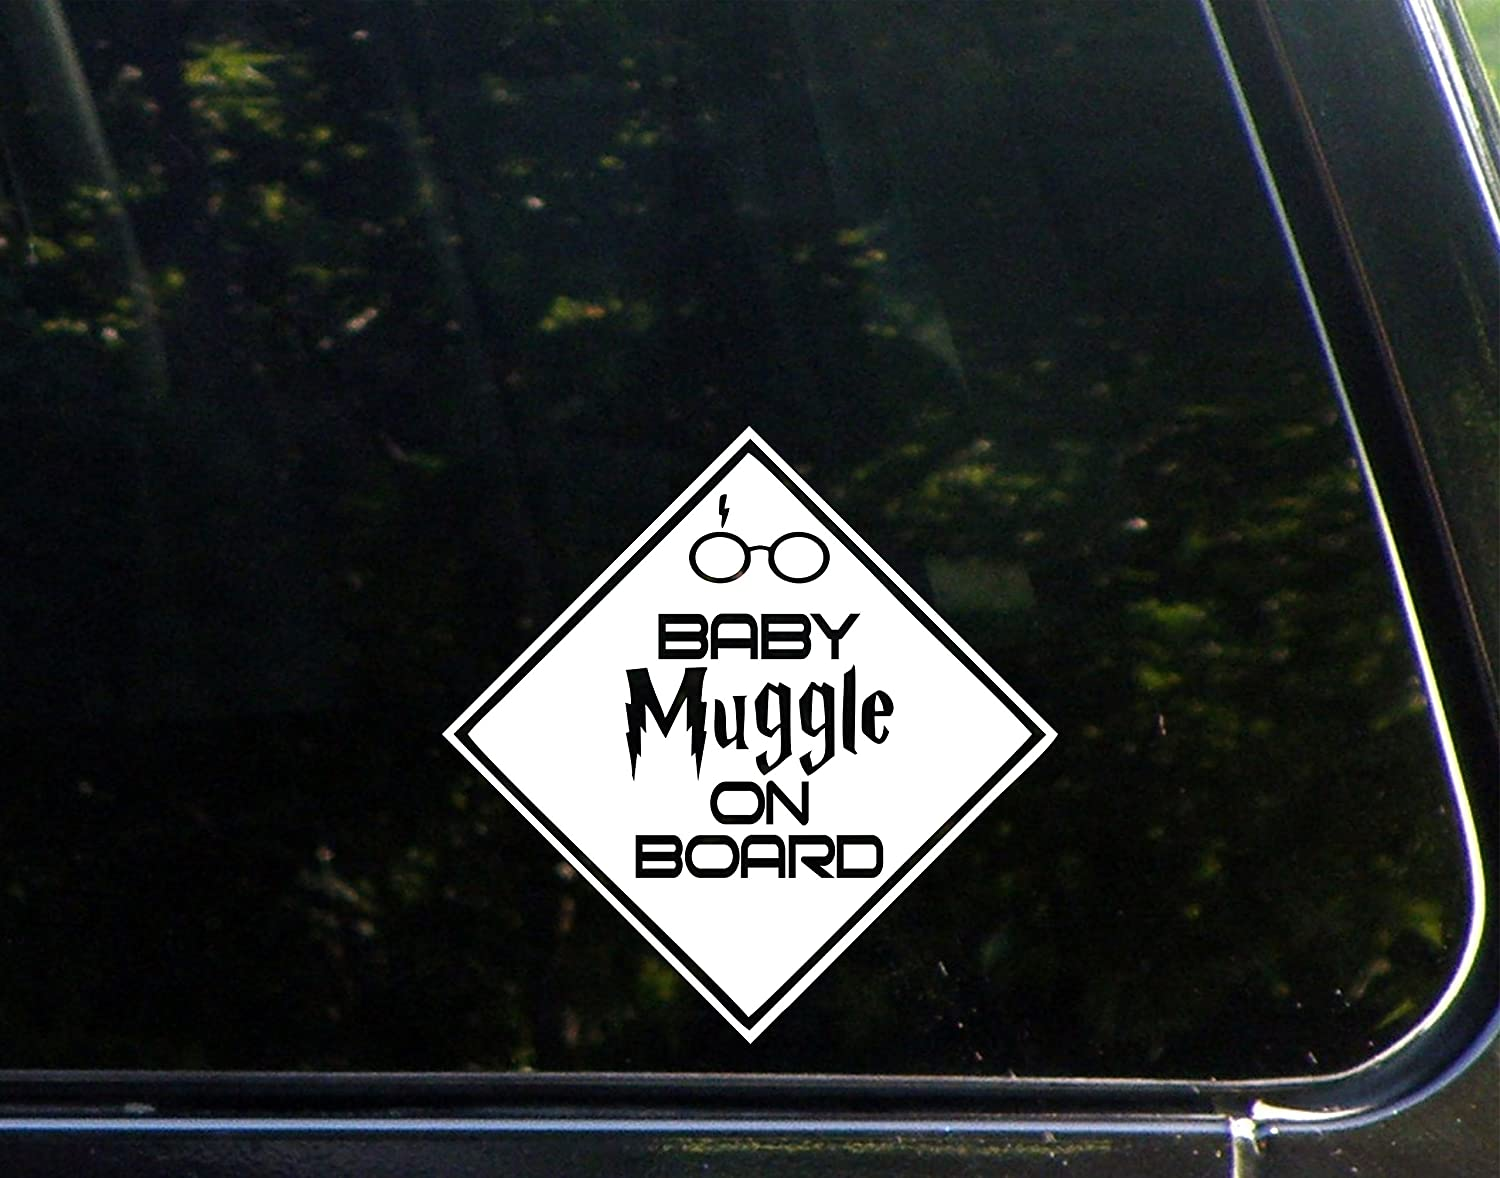 Baby Muggle on board - 6